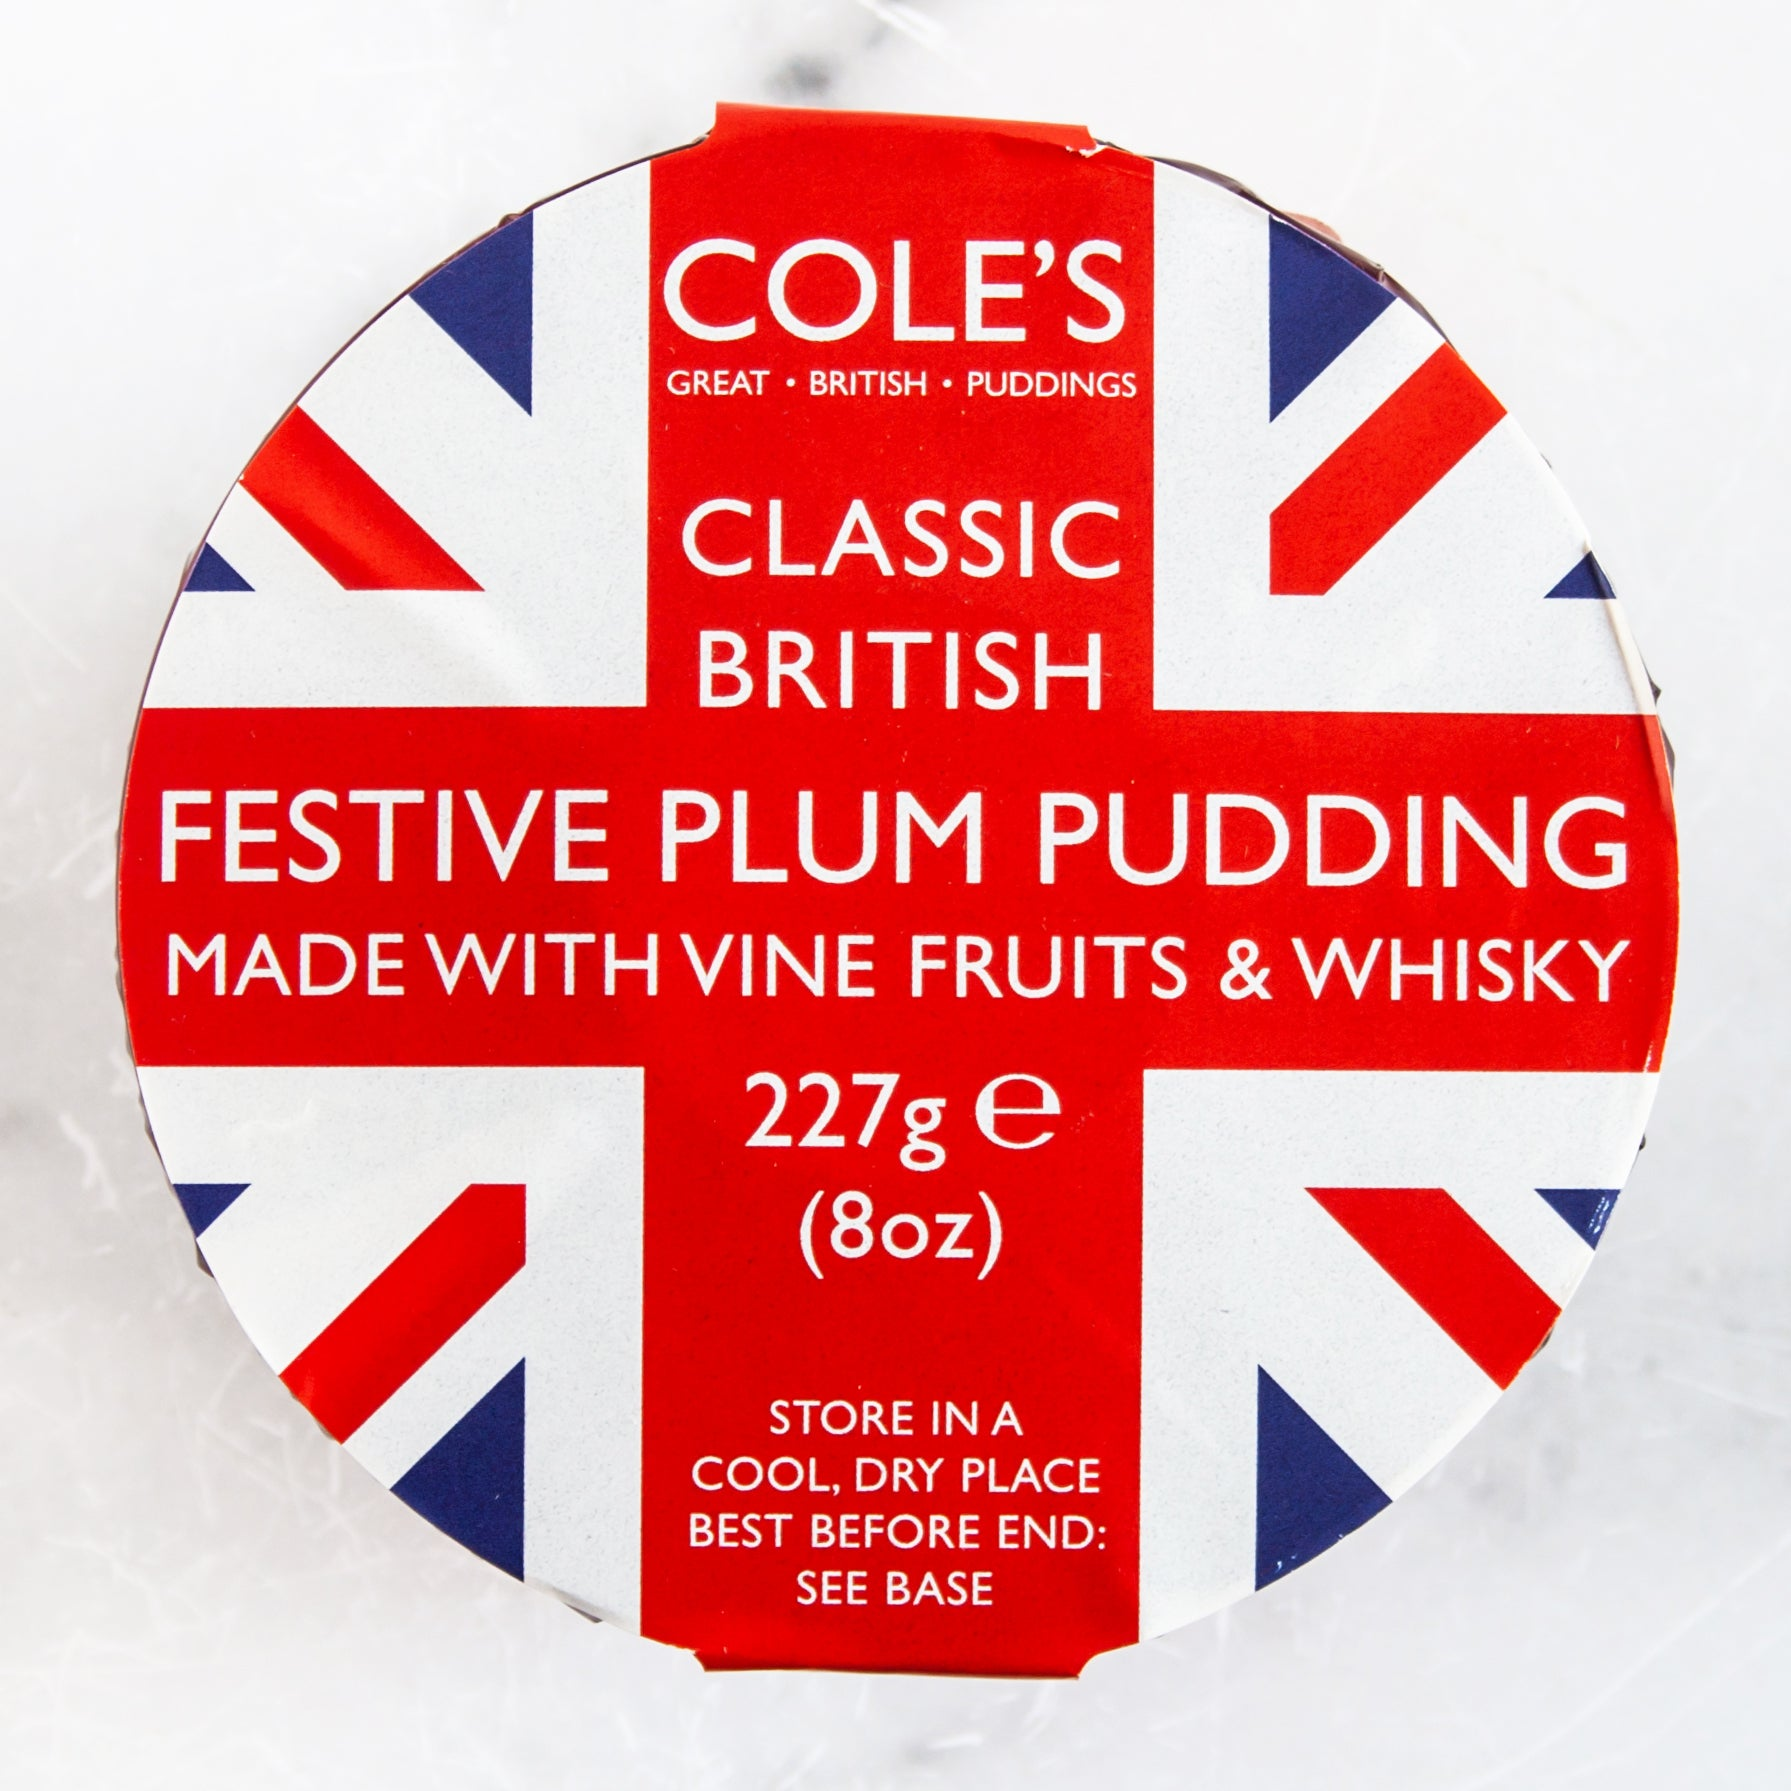 Festive Plum Pudding with Whisky